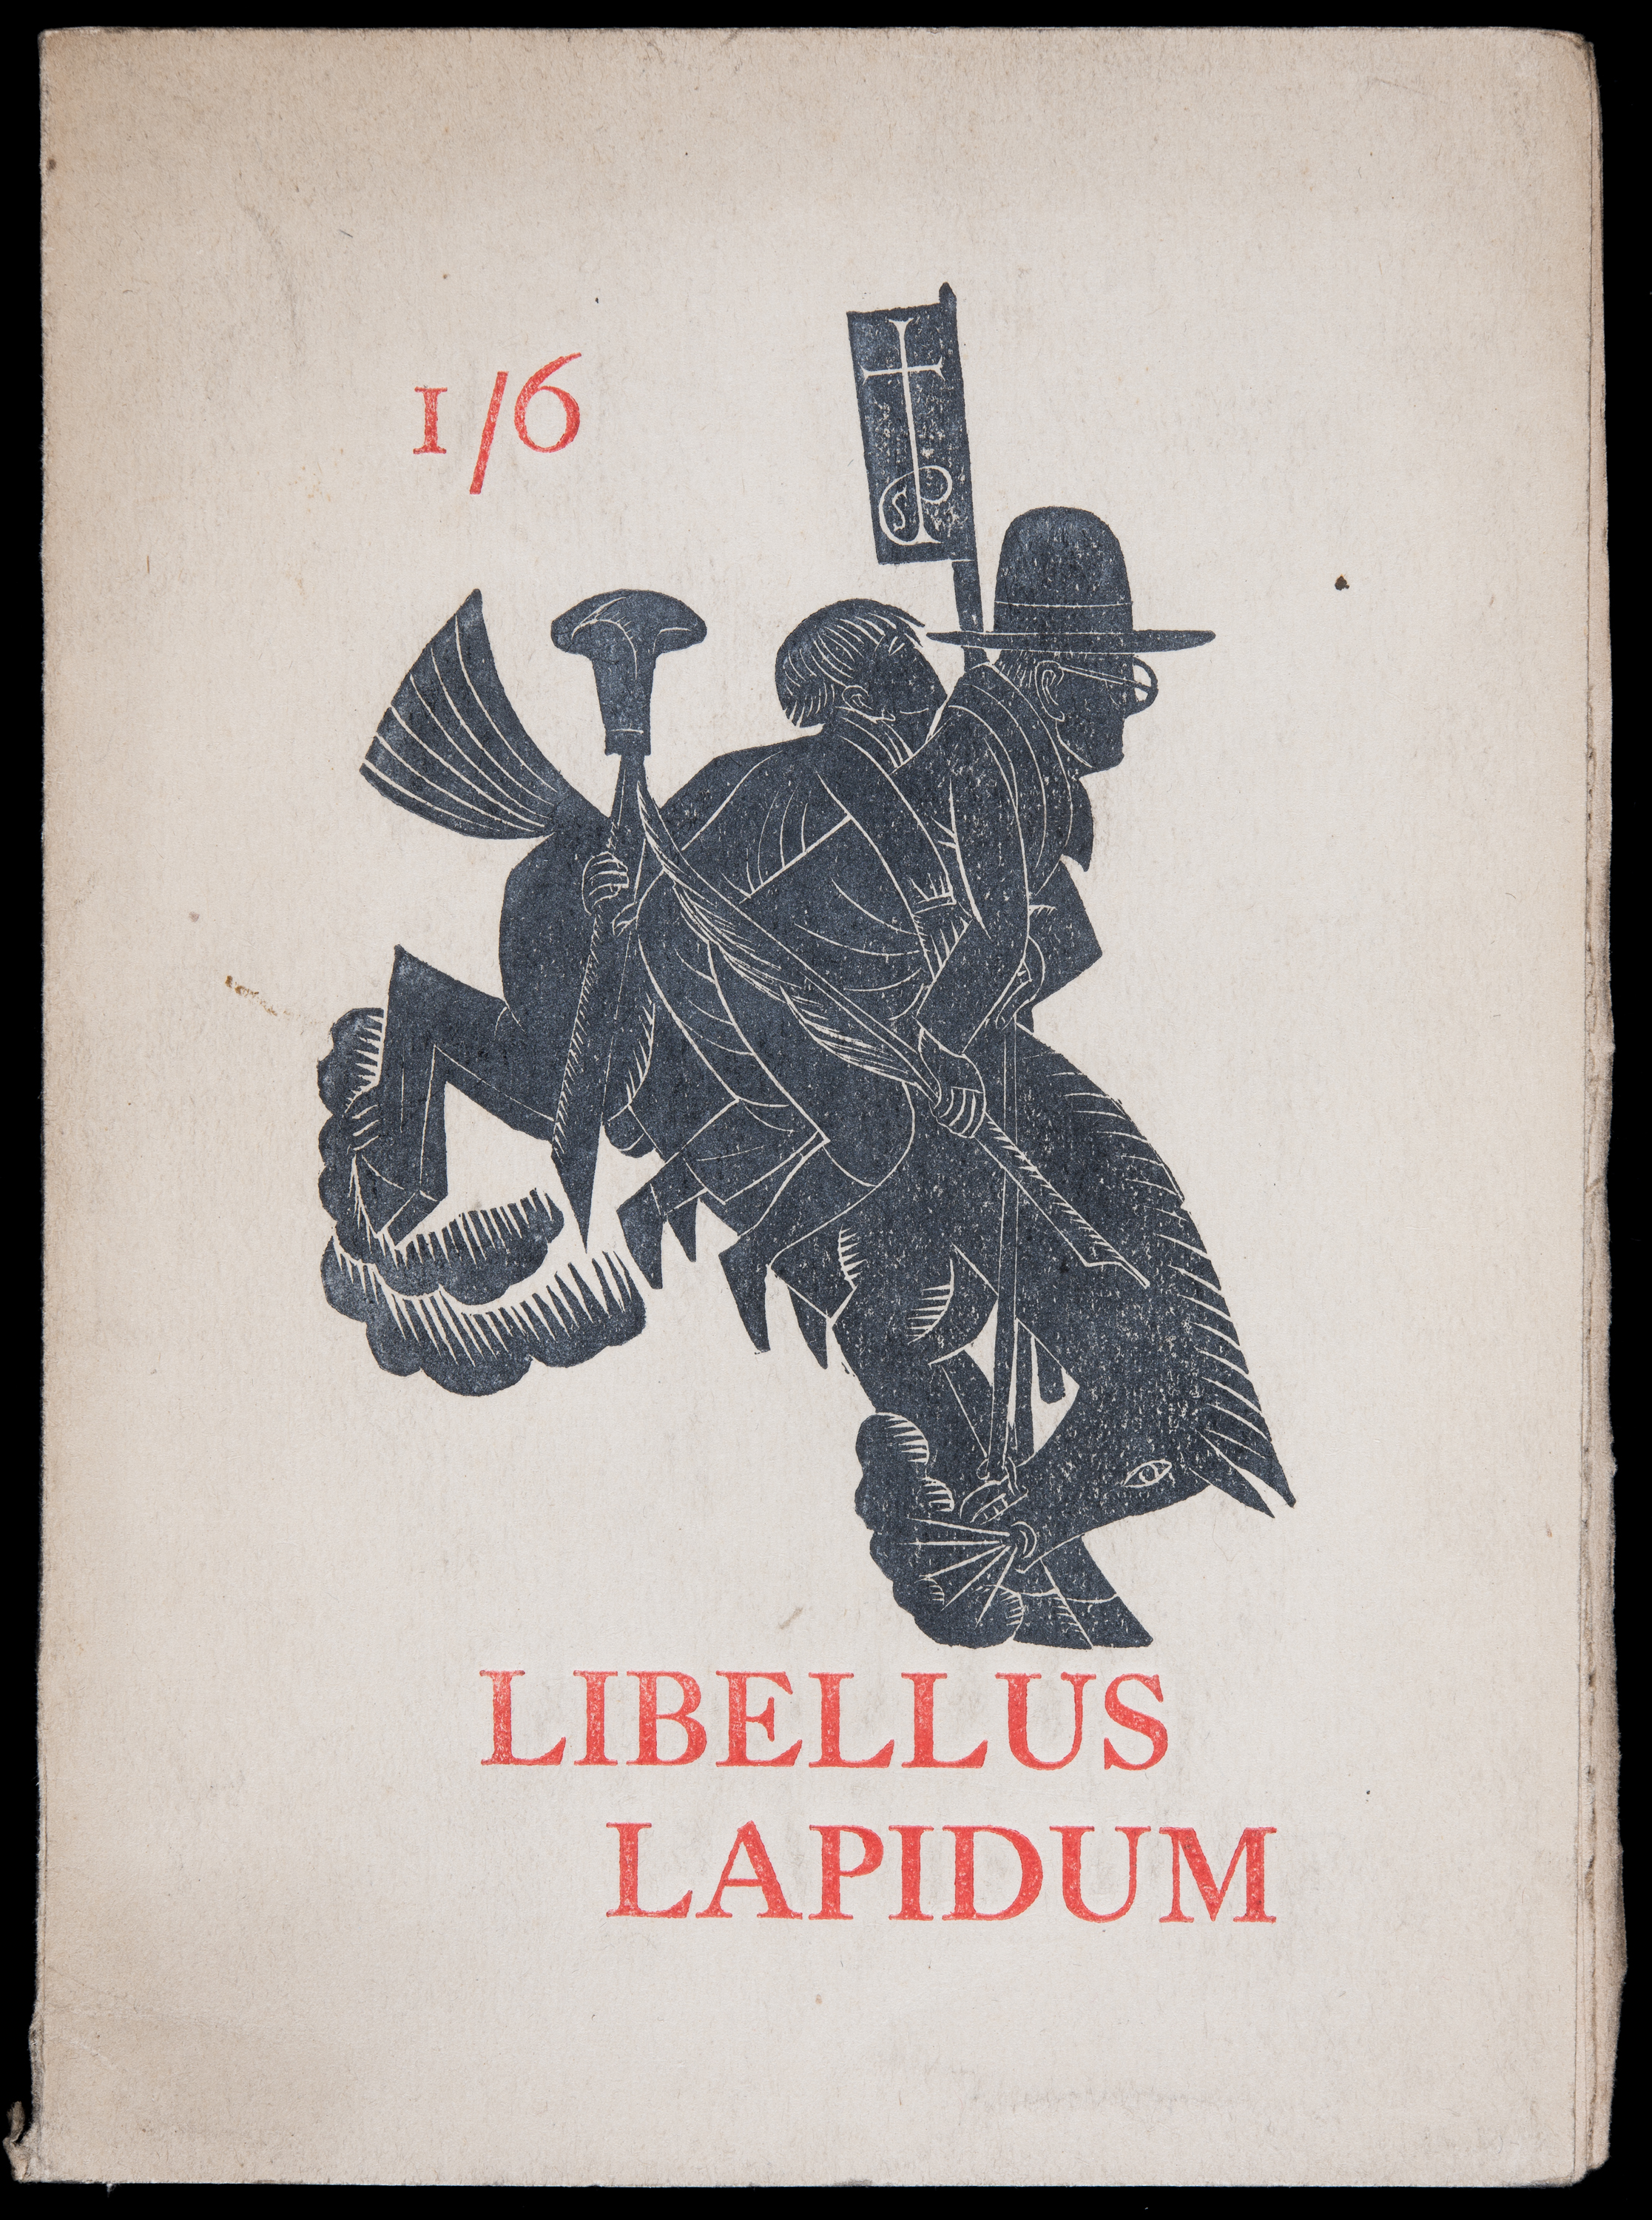 Libellus Lapidum, St Dominic's Press, 1924. Photo Credit Ditchling Museum of Art + Craft